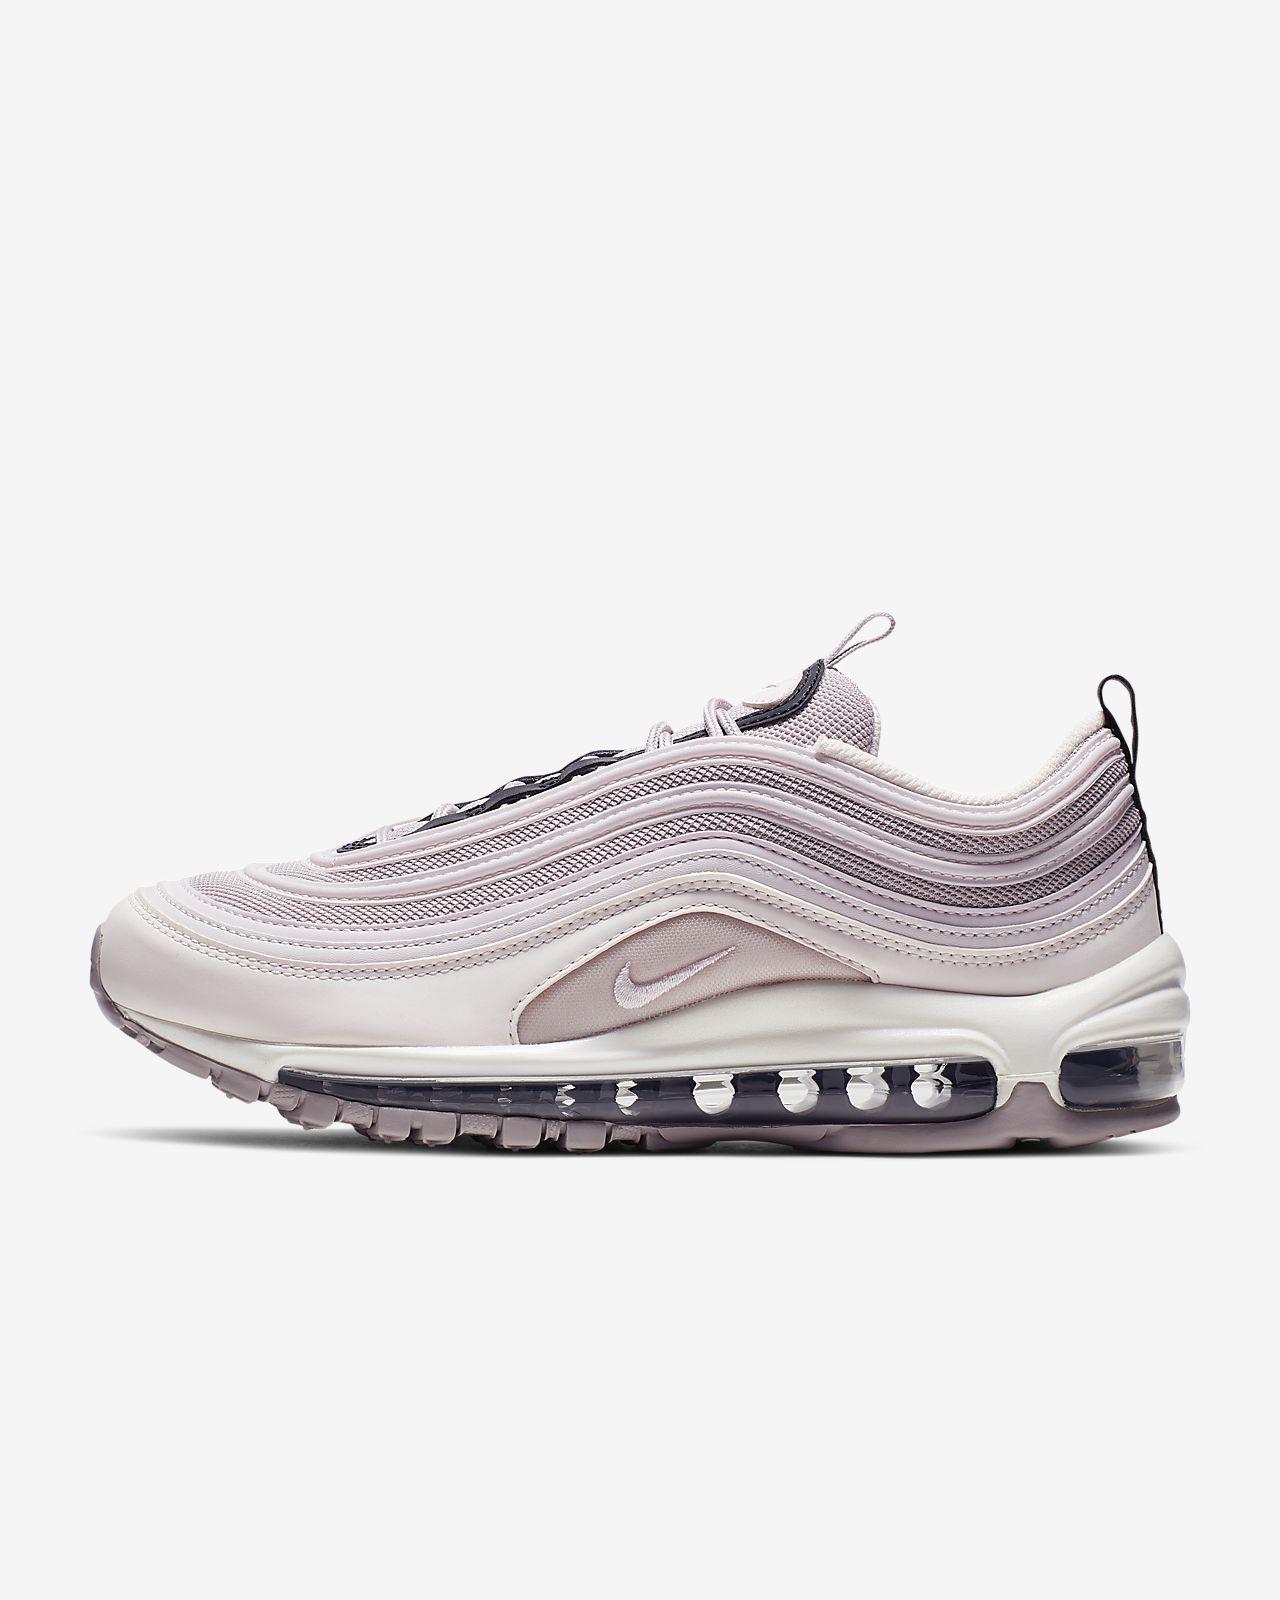 official photos 21657 4ce04 ... Nike Air Max 97 Women s Shoe